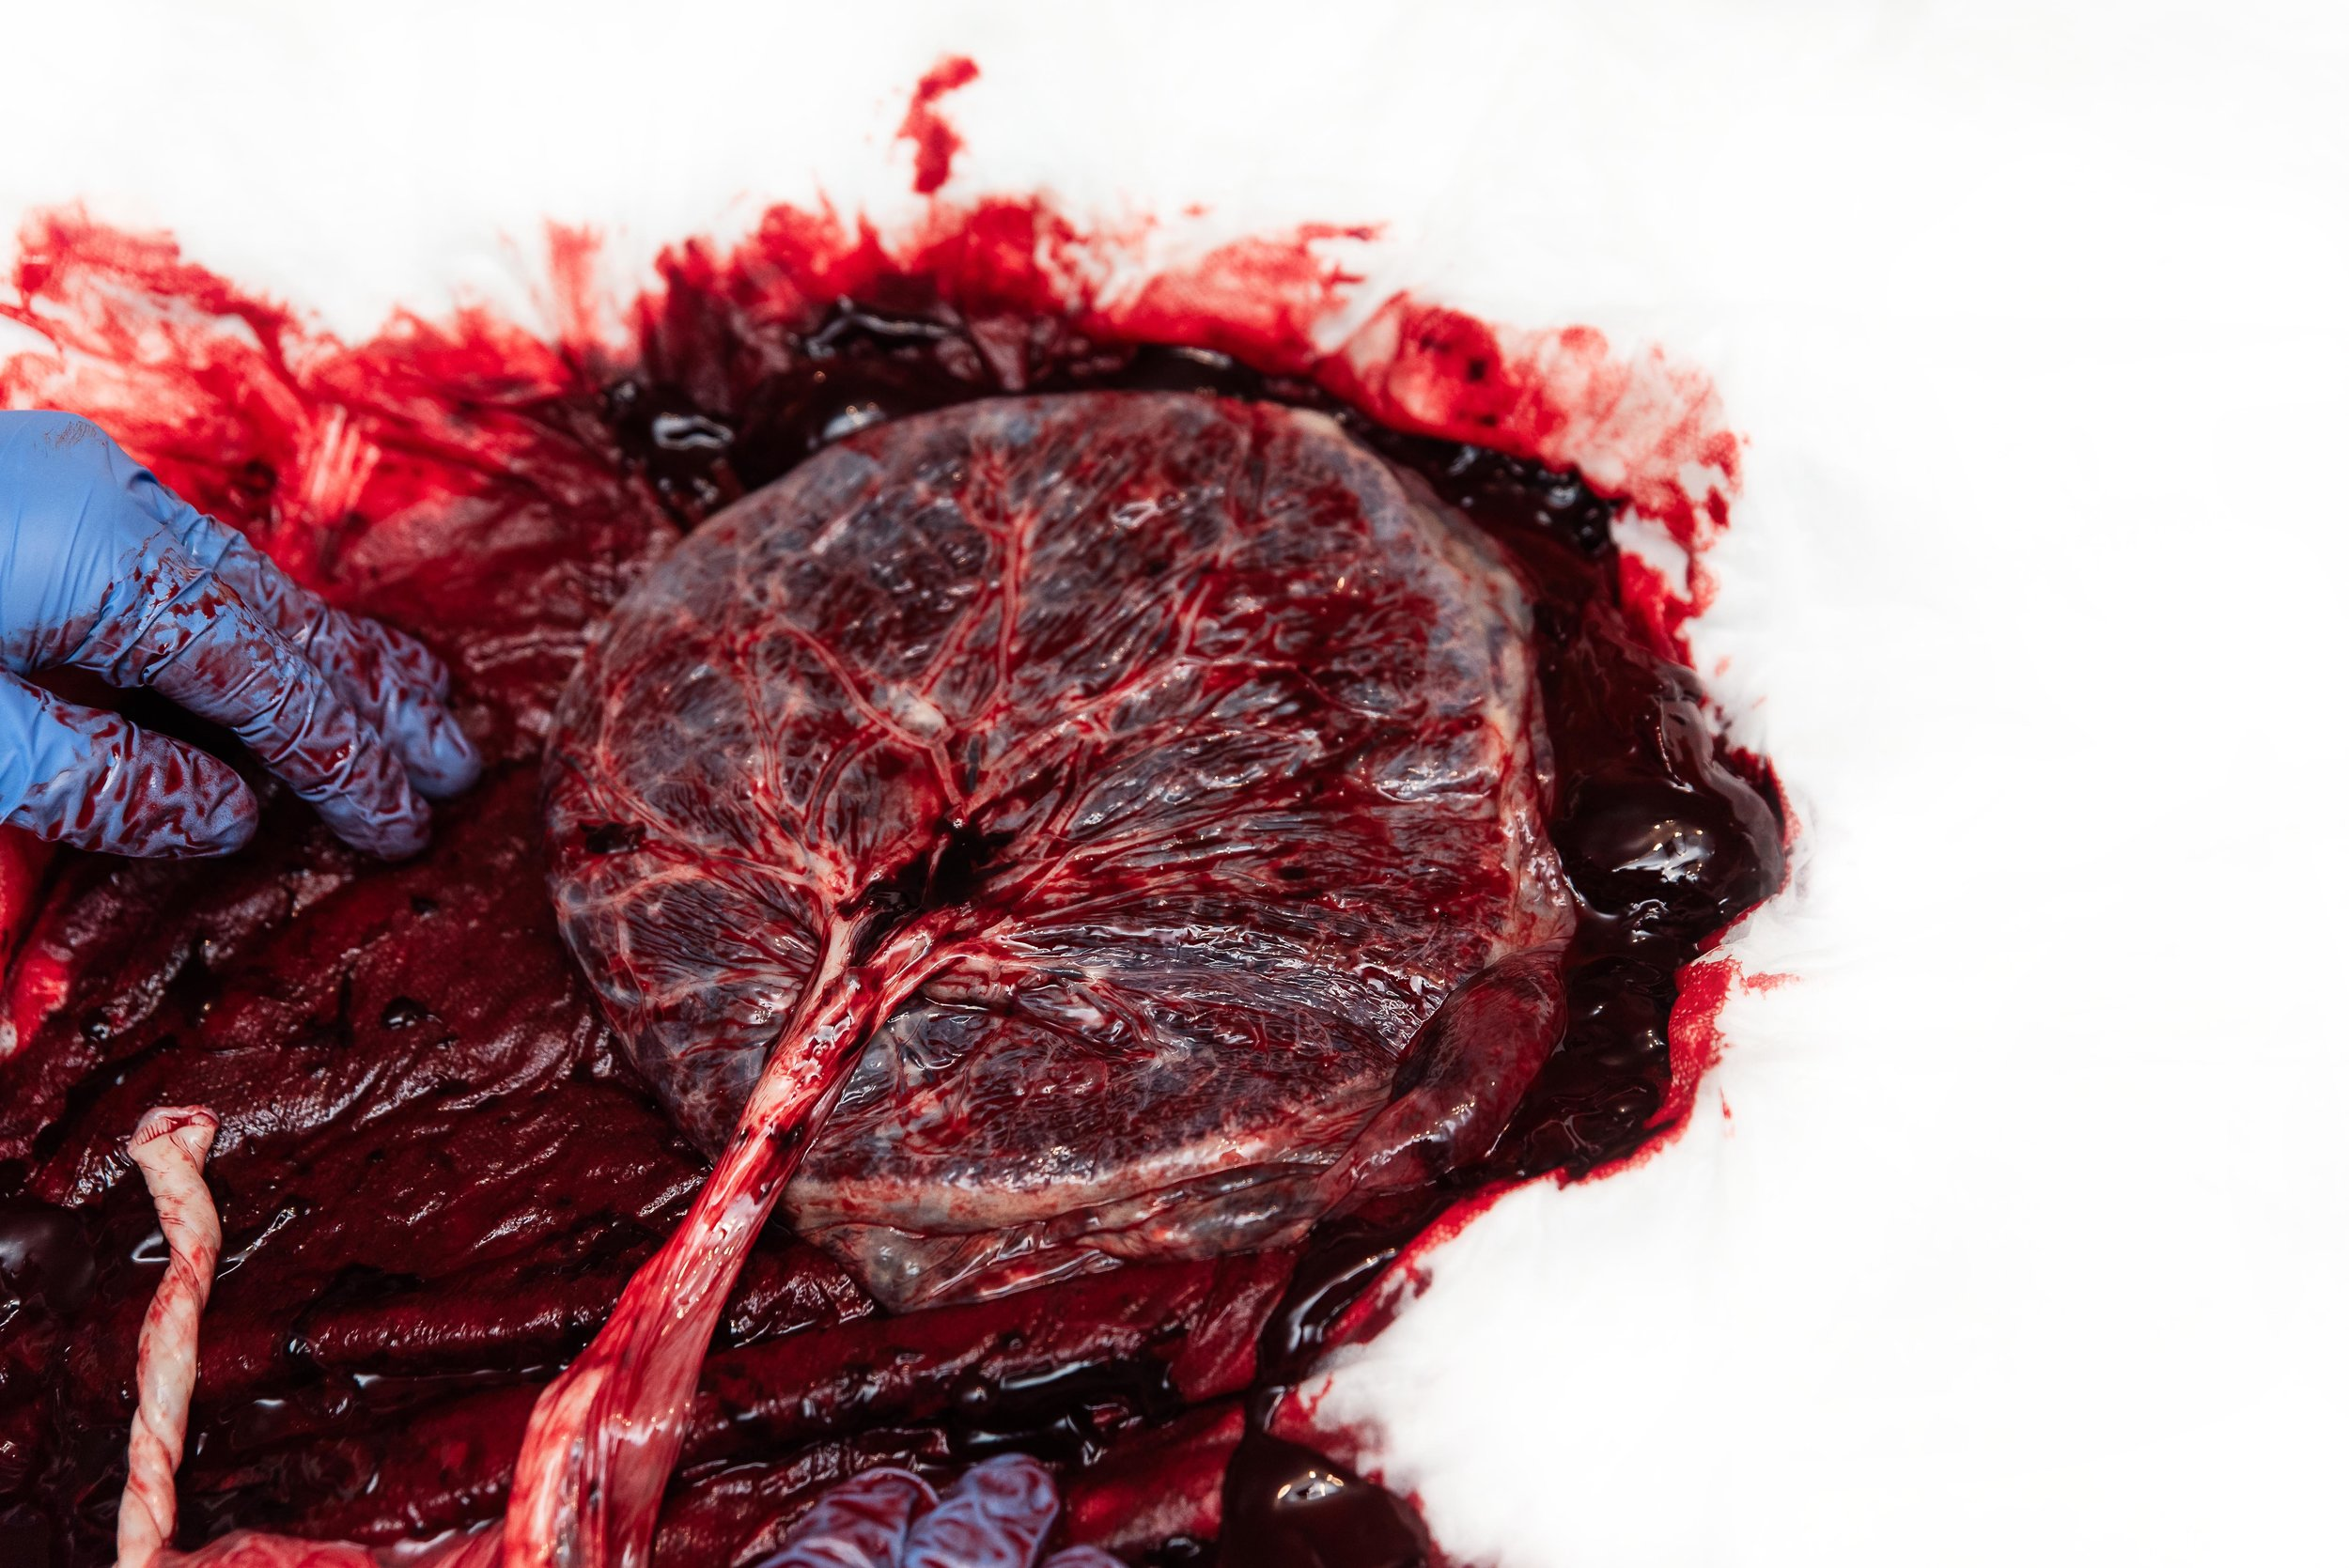 placenta being examined